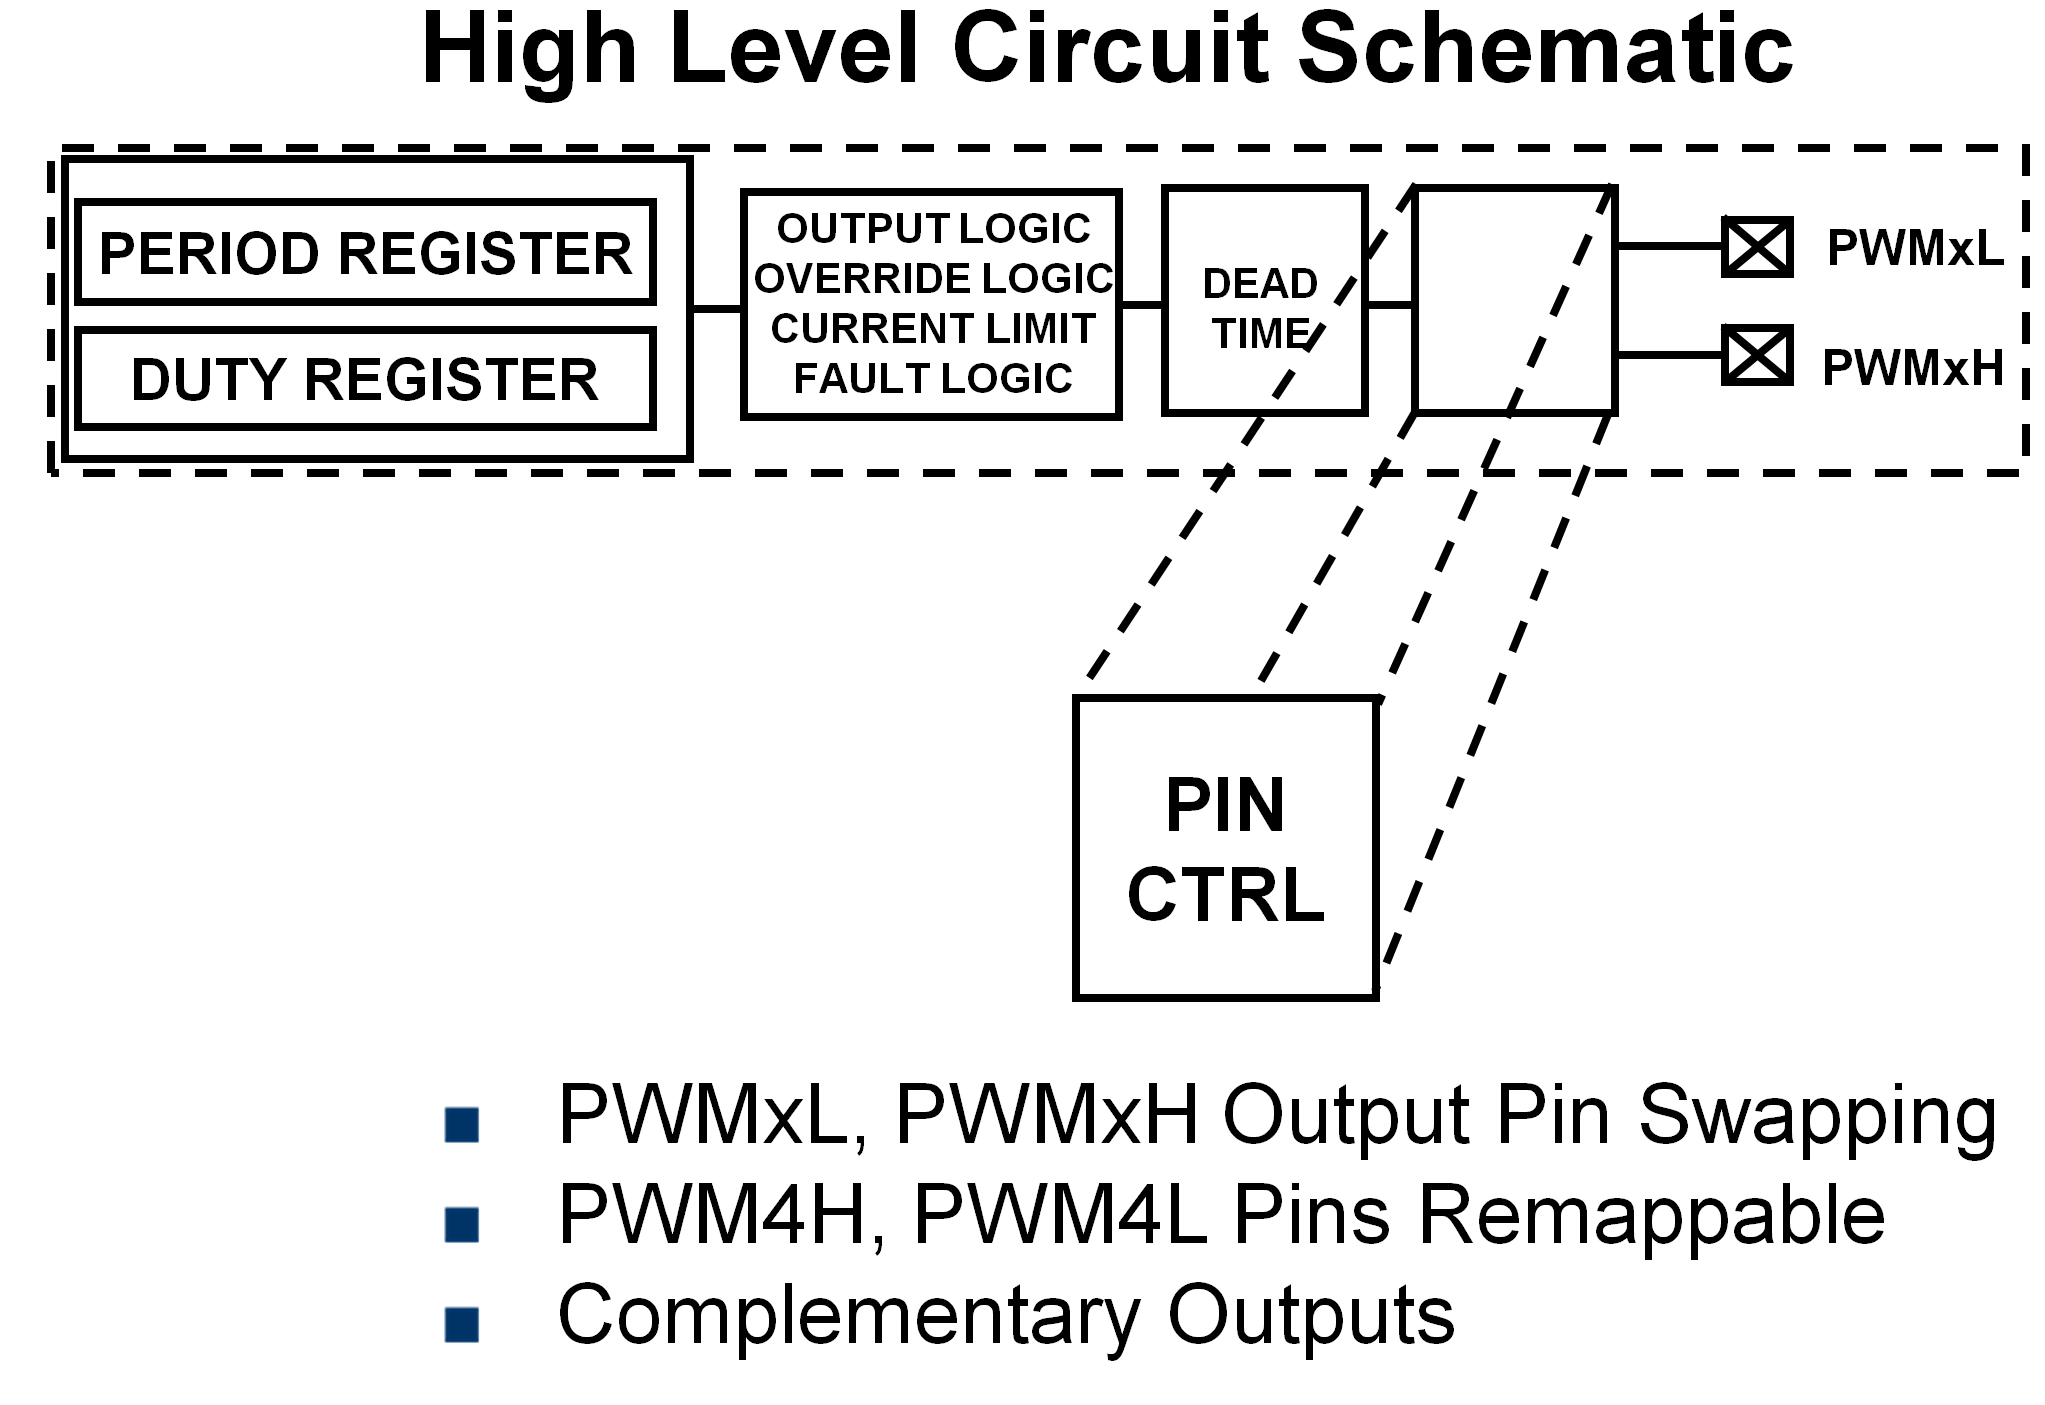 pwm-pin-control.png